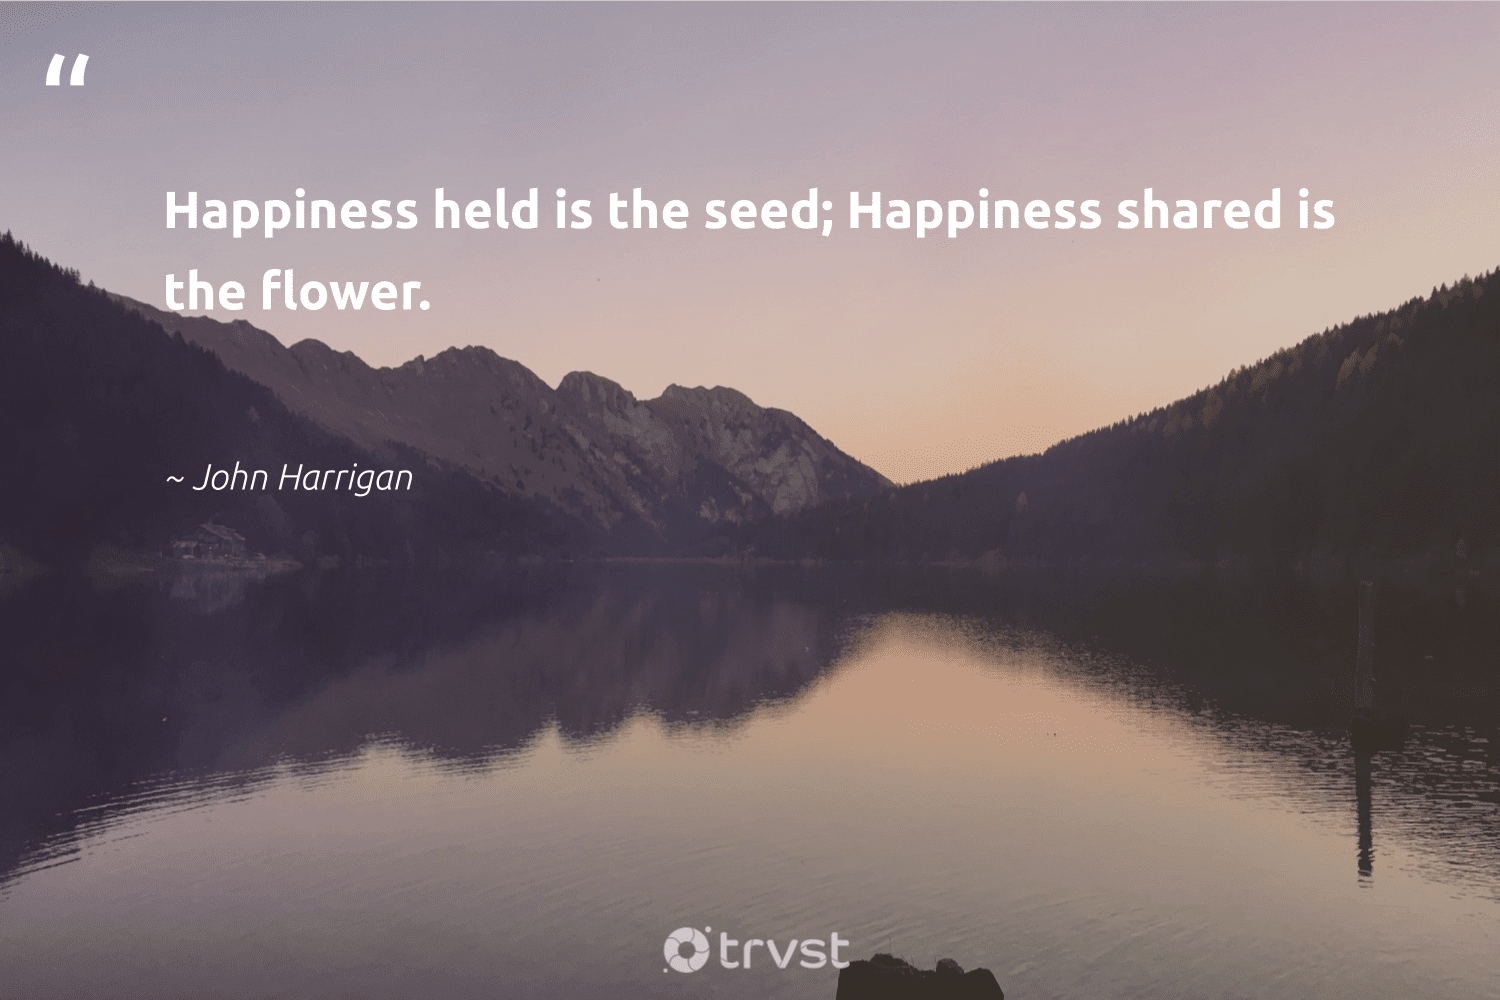 """""""Happiness held is the seed; Happiness shared is the flower.""""  - John Harrigan #trvst #quotes #happiness #begreat #bethechange #togetherwecan #collectiveaction #changemakers #socialchange #nevergiveup #gogreen #health"""